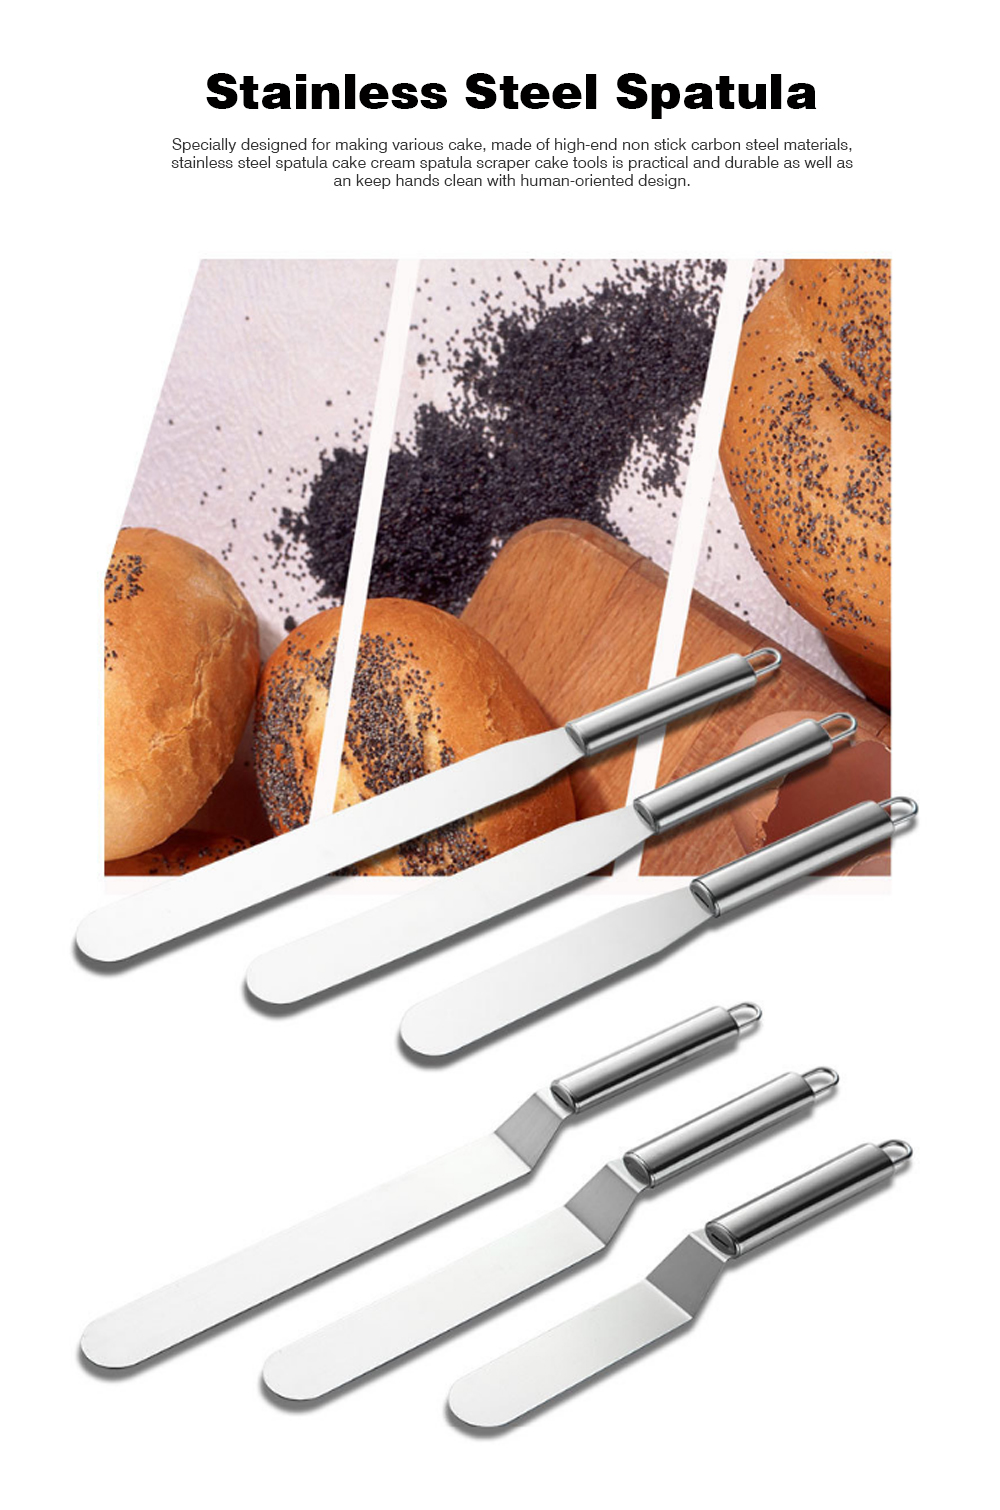 Kiss Knife Cake Tools, Stainless Steel Spatula Cake Cream Spatula Scraper, 8 Inch and 10 Inch 0